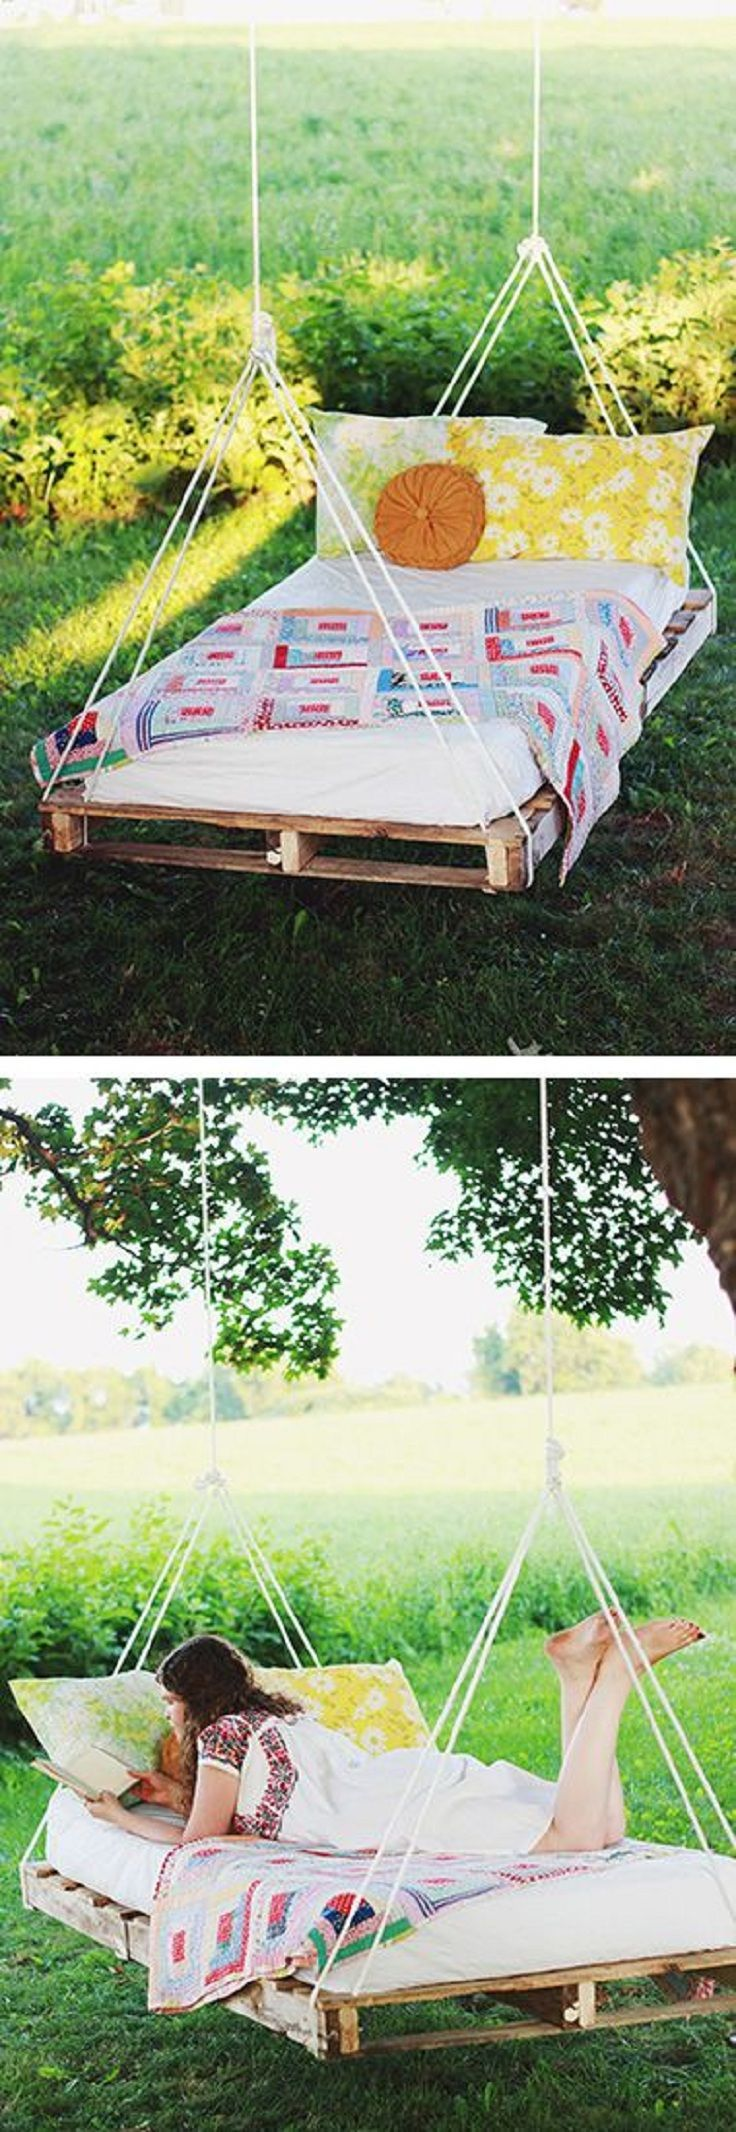 DIY Pallet Swing Bed Dream home Pinterest